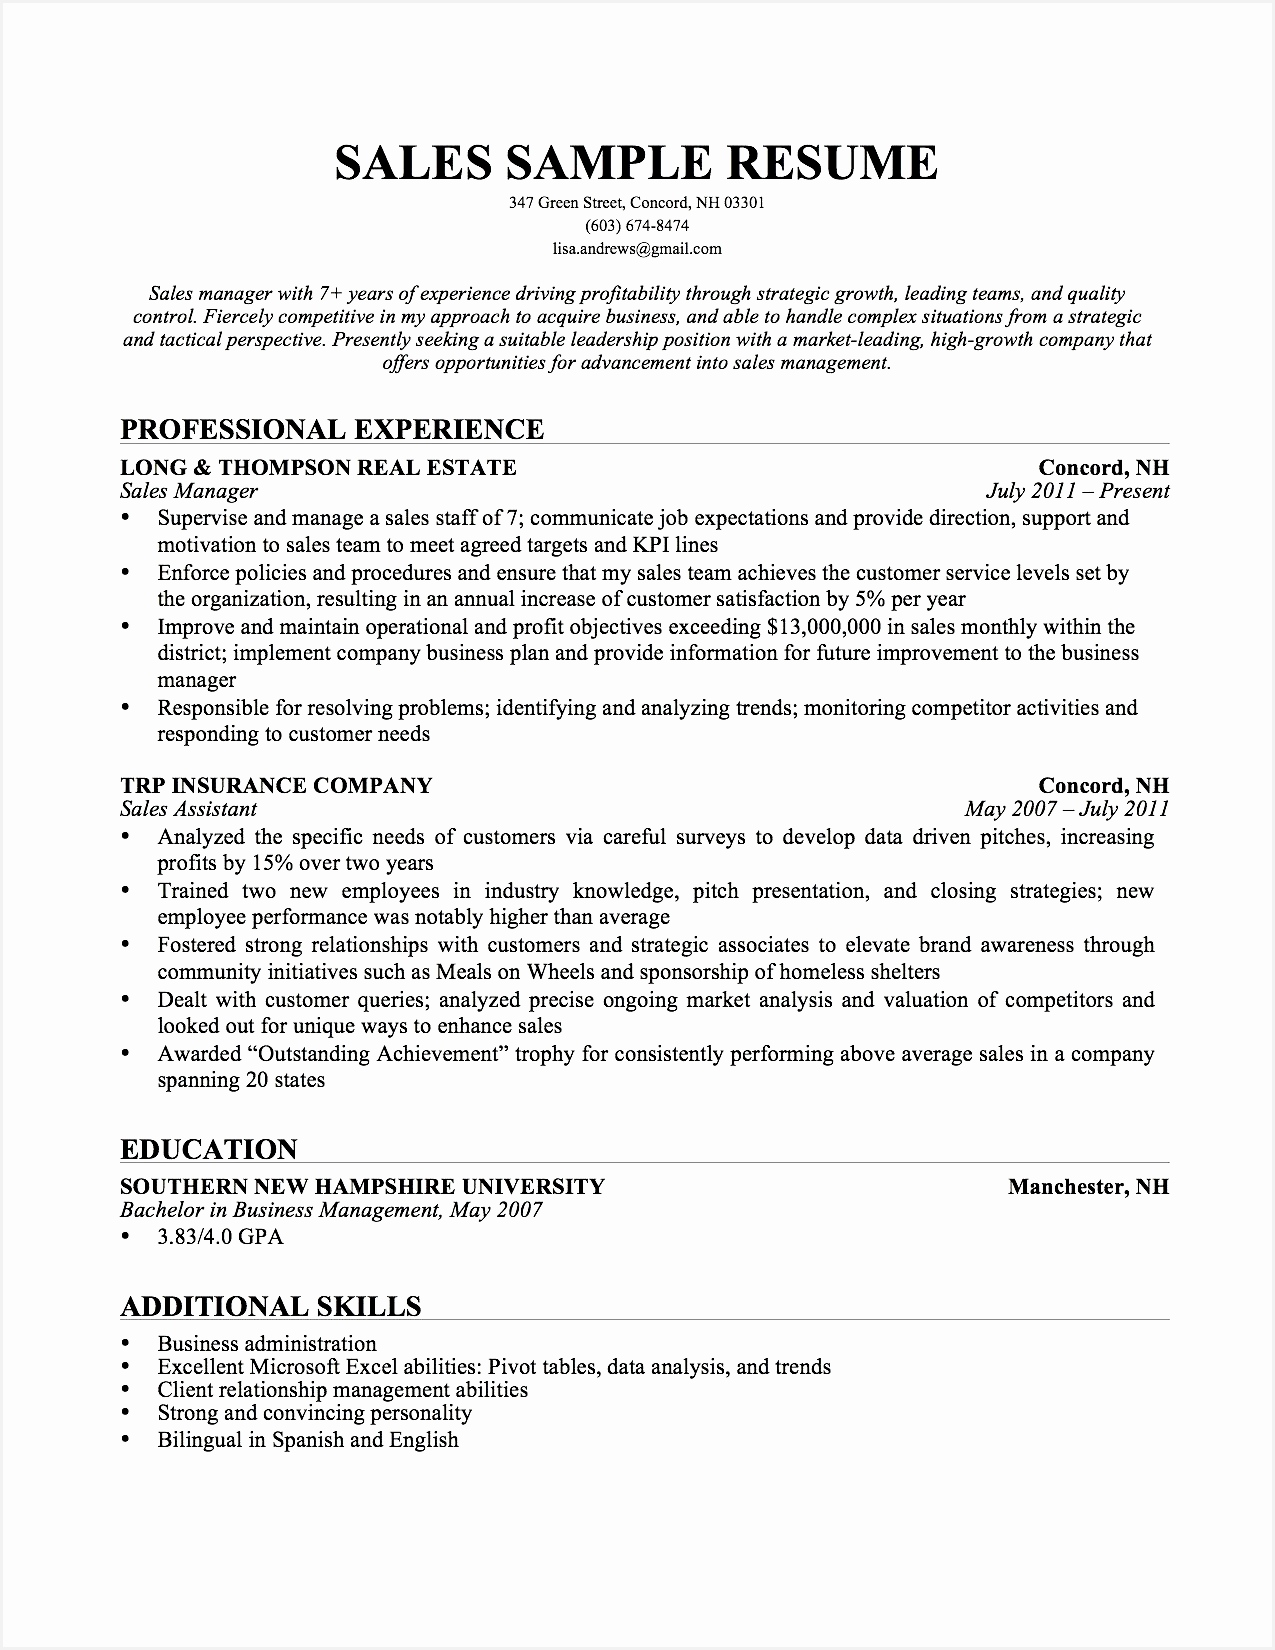 Resume Template In Word 2013 Lovely American Resume Sample New Student Resume 0d Wallpapers 42 Awesome16501275